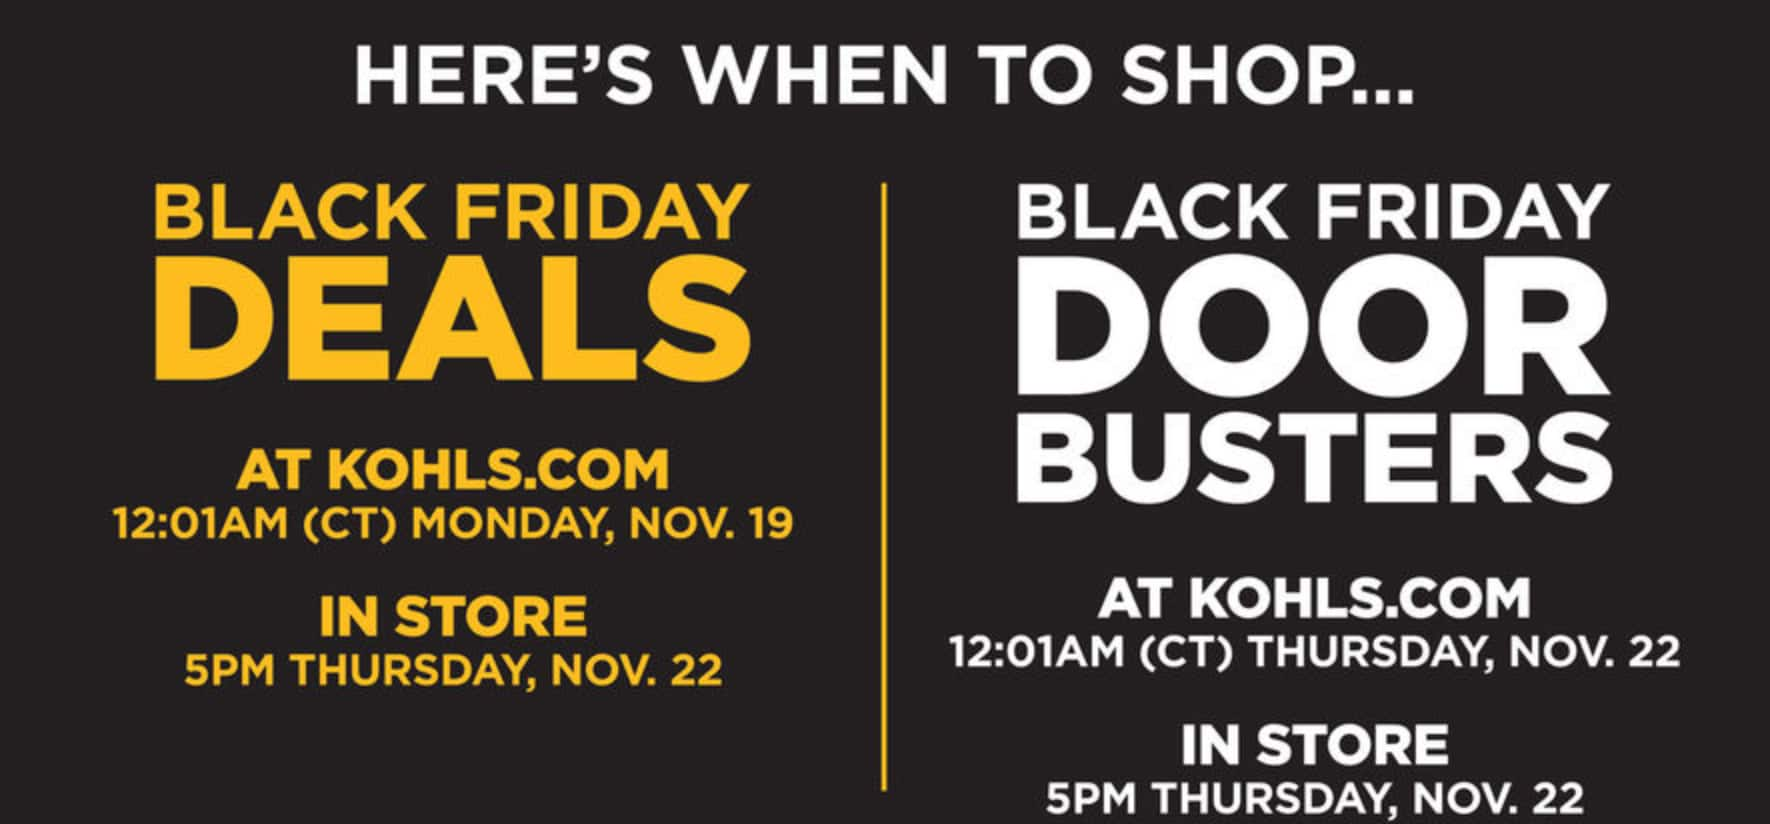 19882d2972b7 The Kohl s Black Friday Ad Is Here and These Are the Best Deals